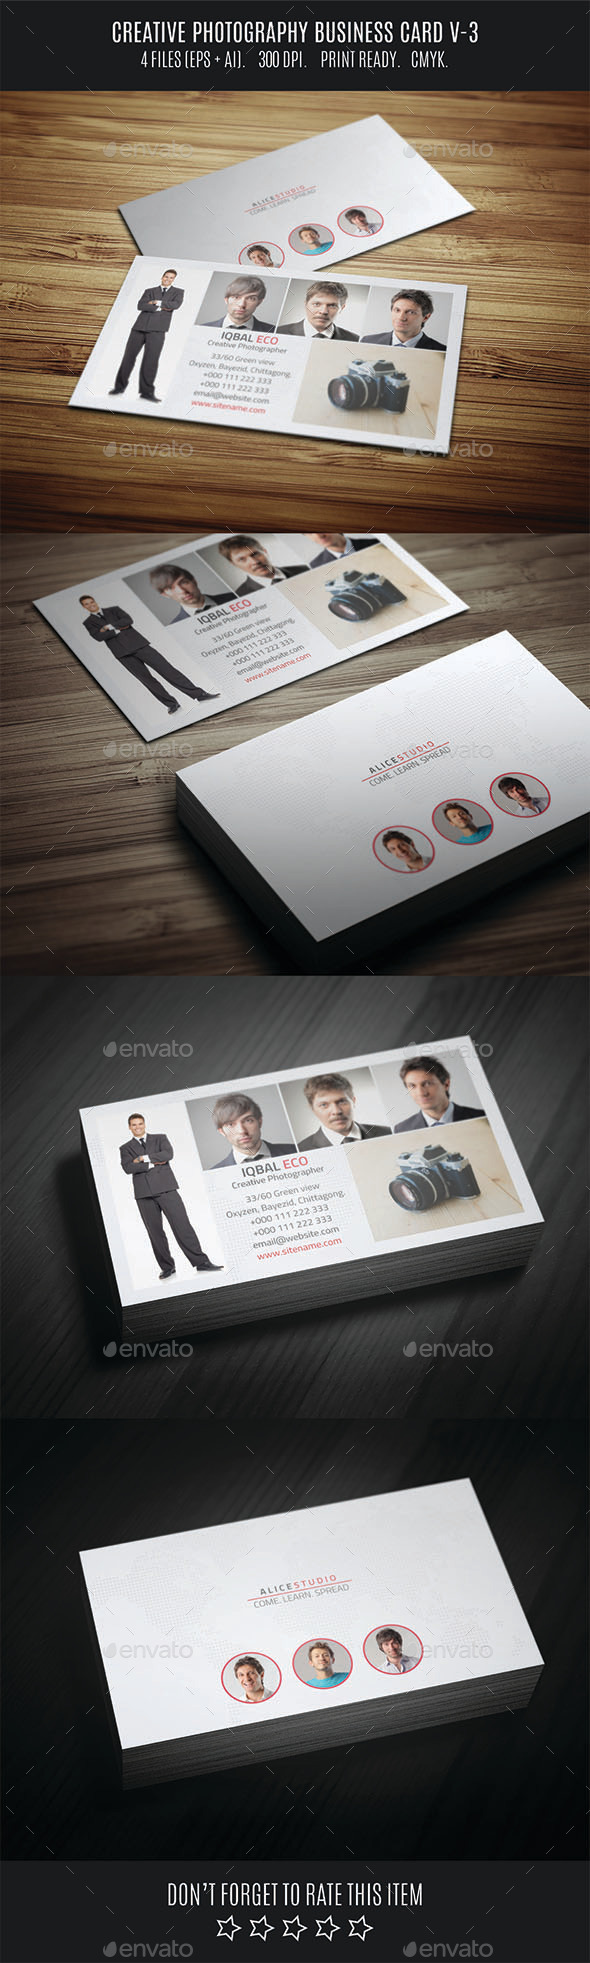 GraphicRiver Creative Photography Business Card V-3 11031359